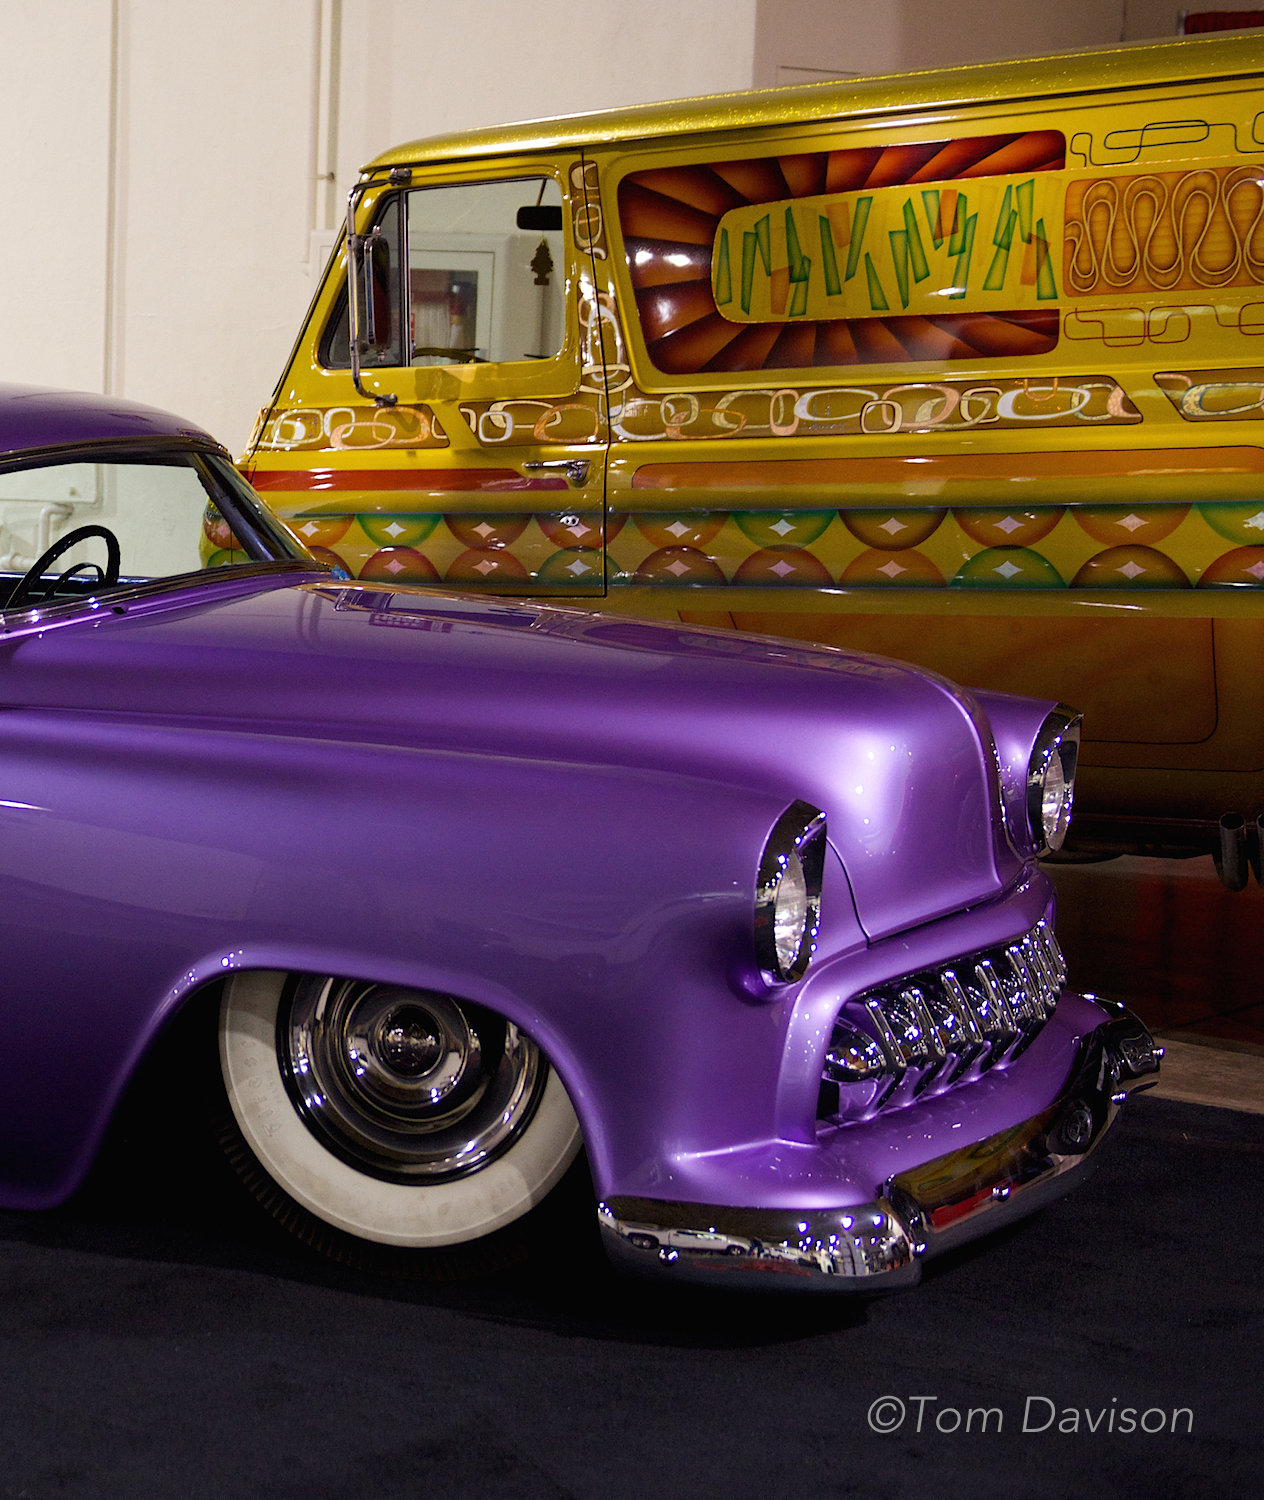 1954 Chevy with custom van in the background.